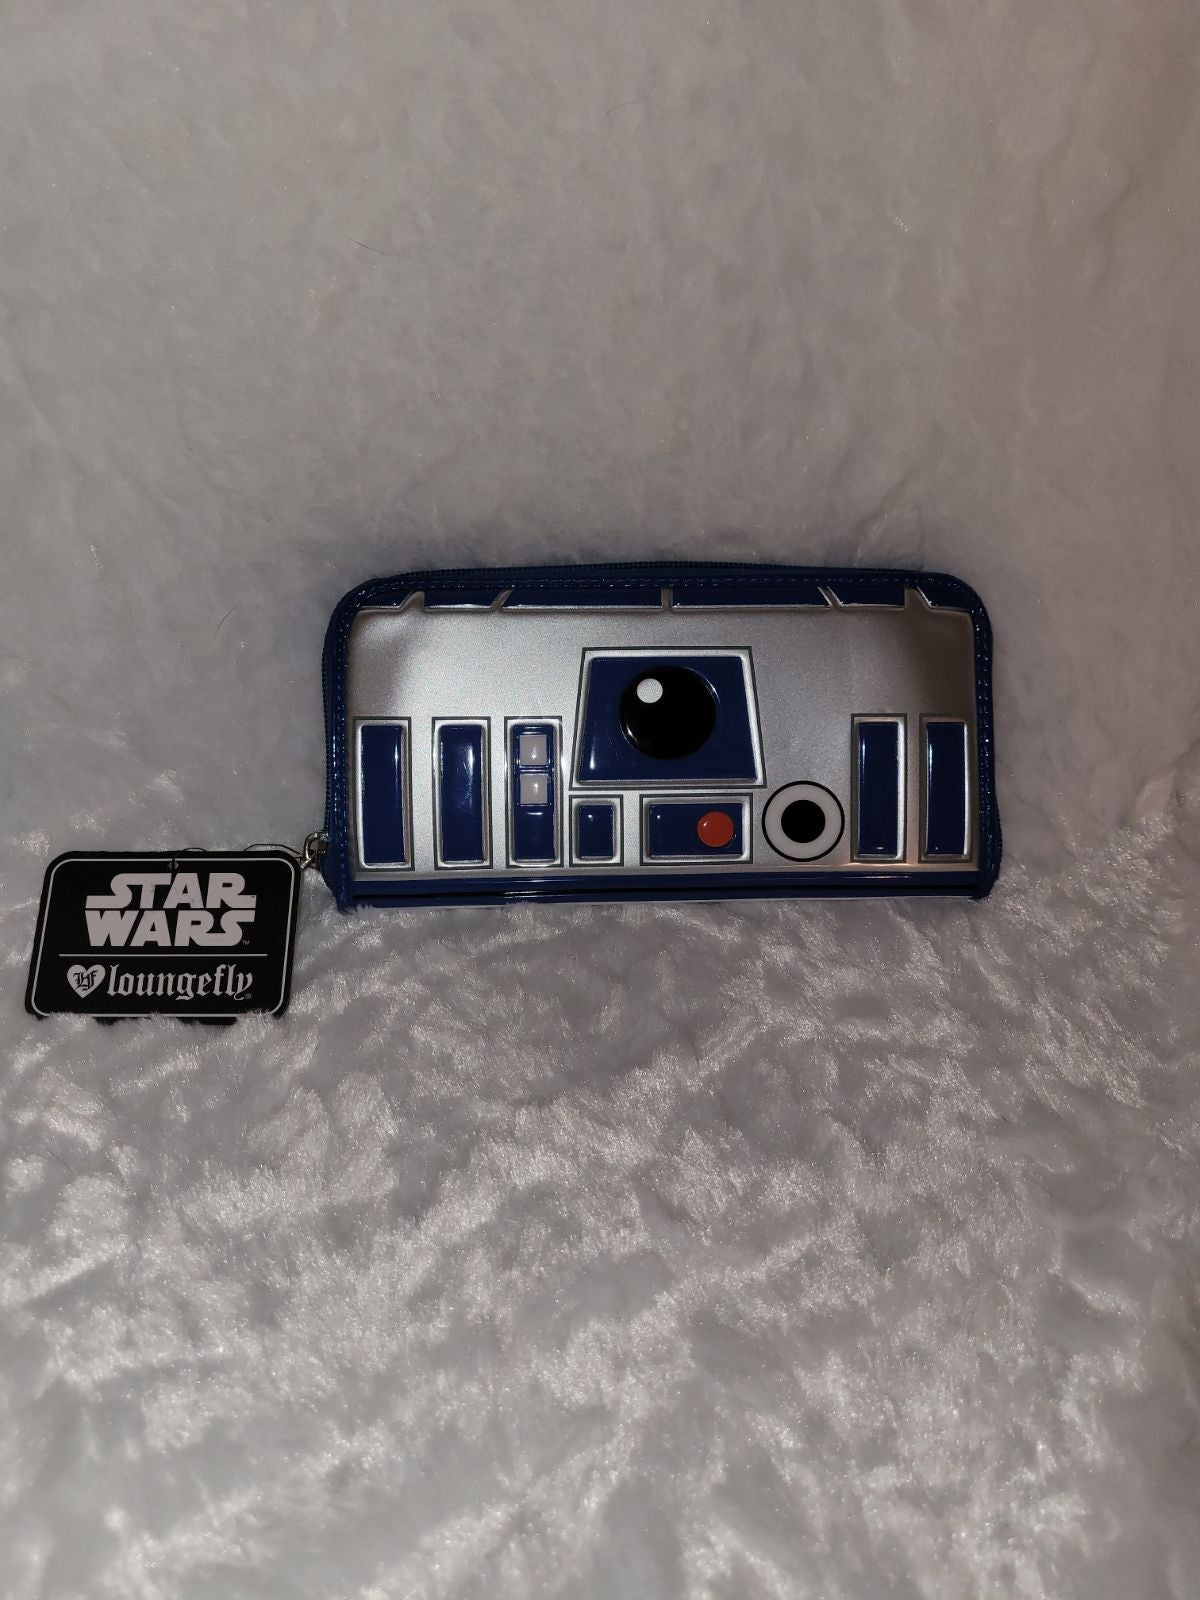 Loungefly Star Wars R2D2 Wallet